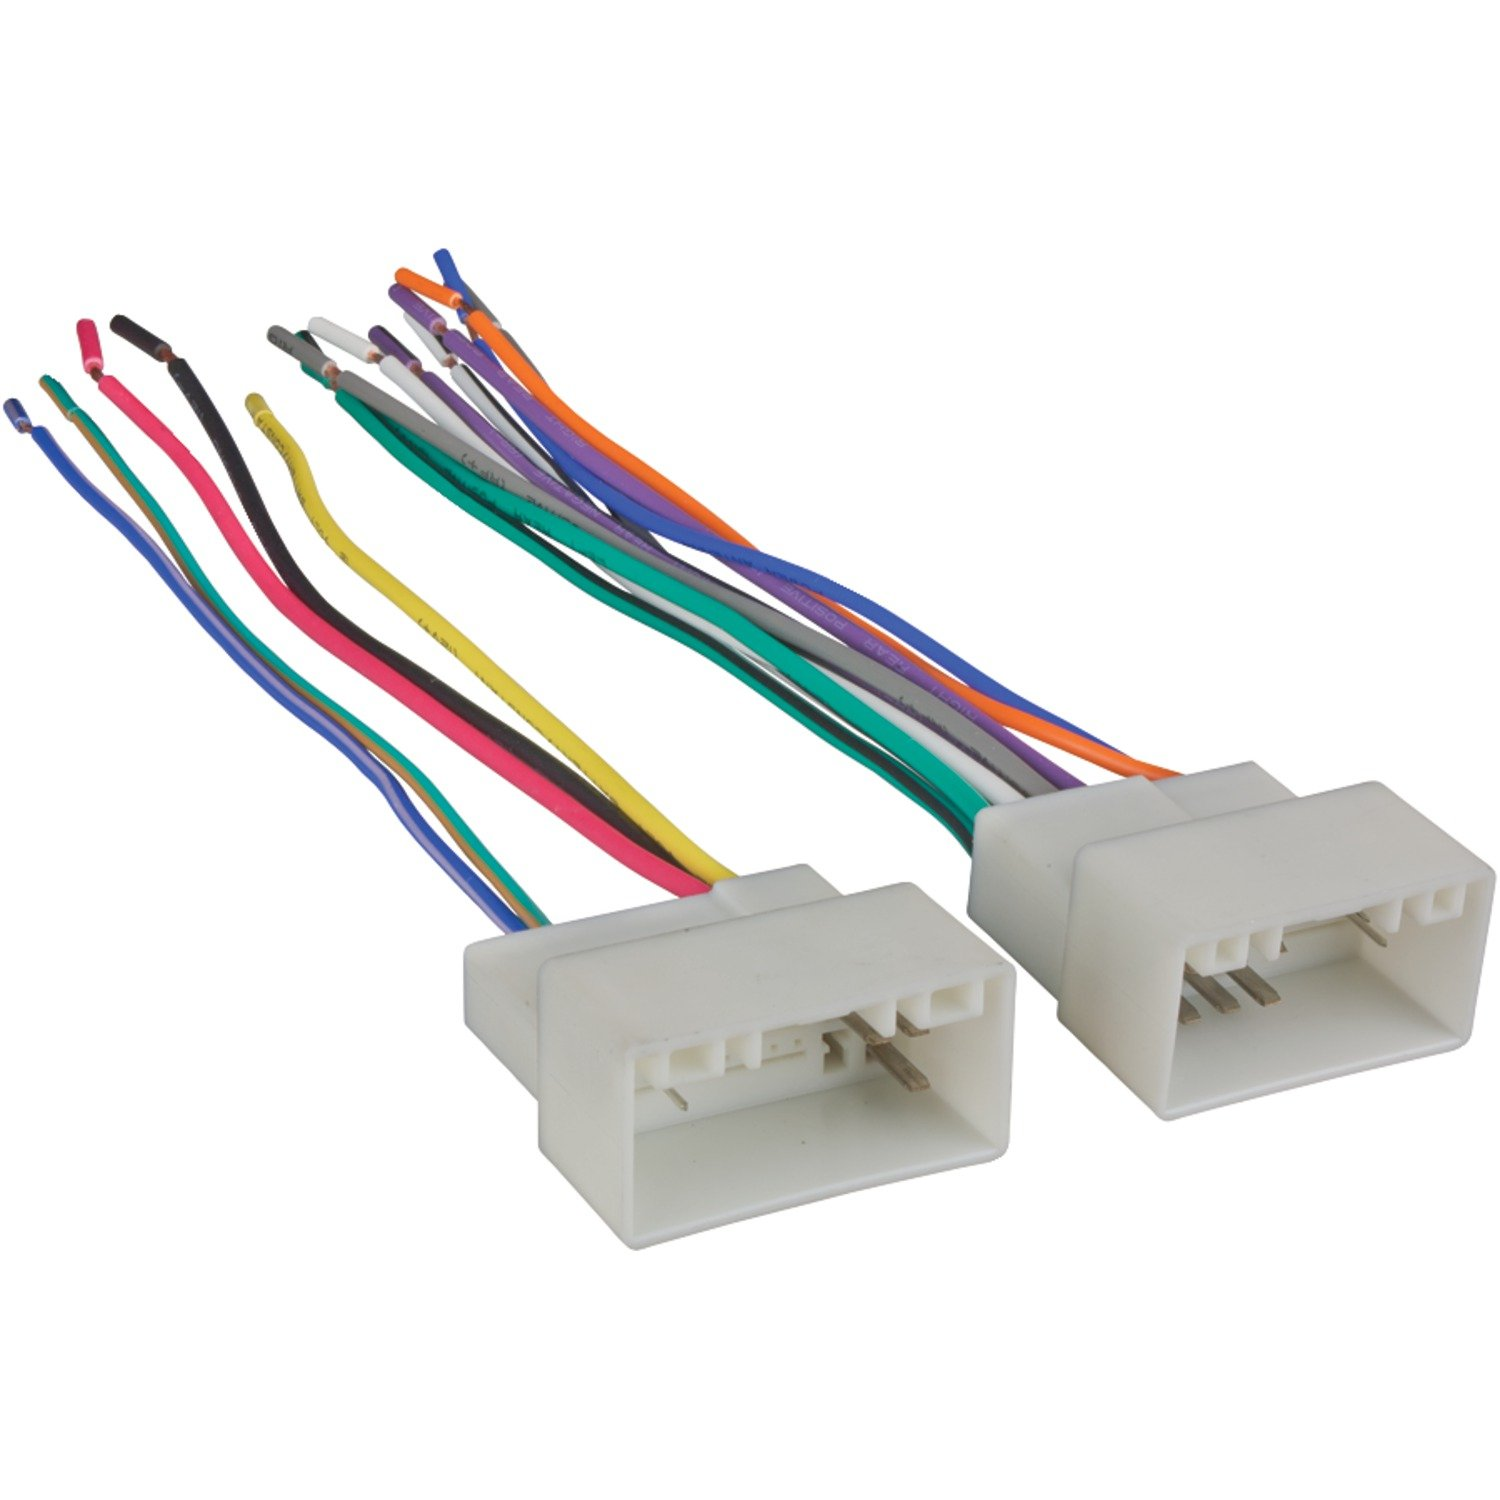 61Pem3k6tEL._SL1500_ amazon com metra 70 7304 wiring harness for select 2010 up kia 2008 Kia Optima at gsmx.co